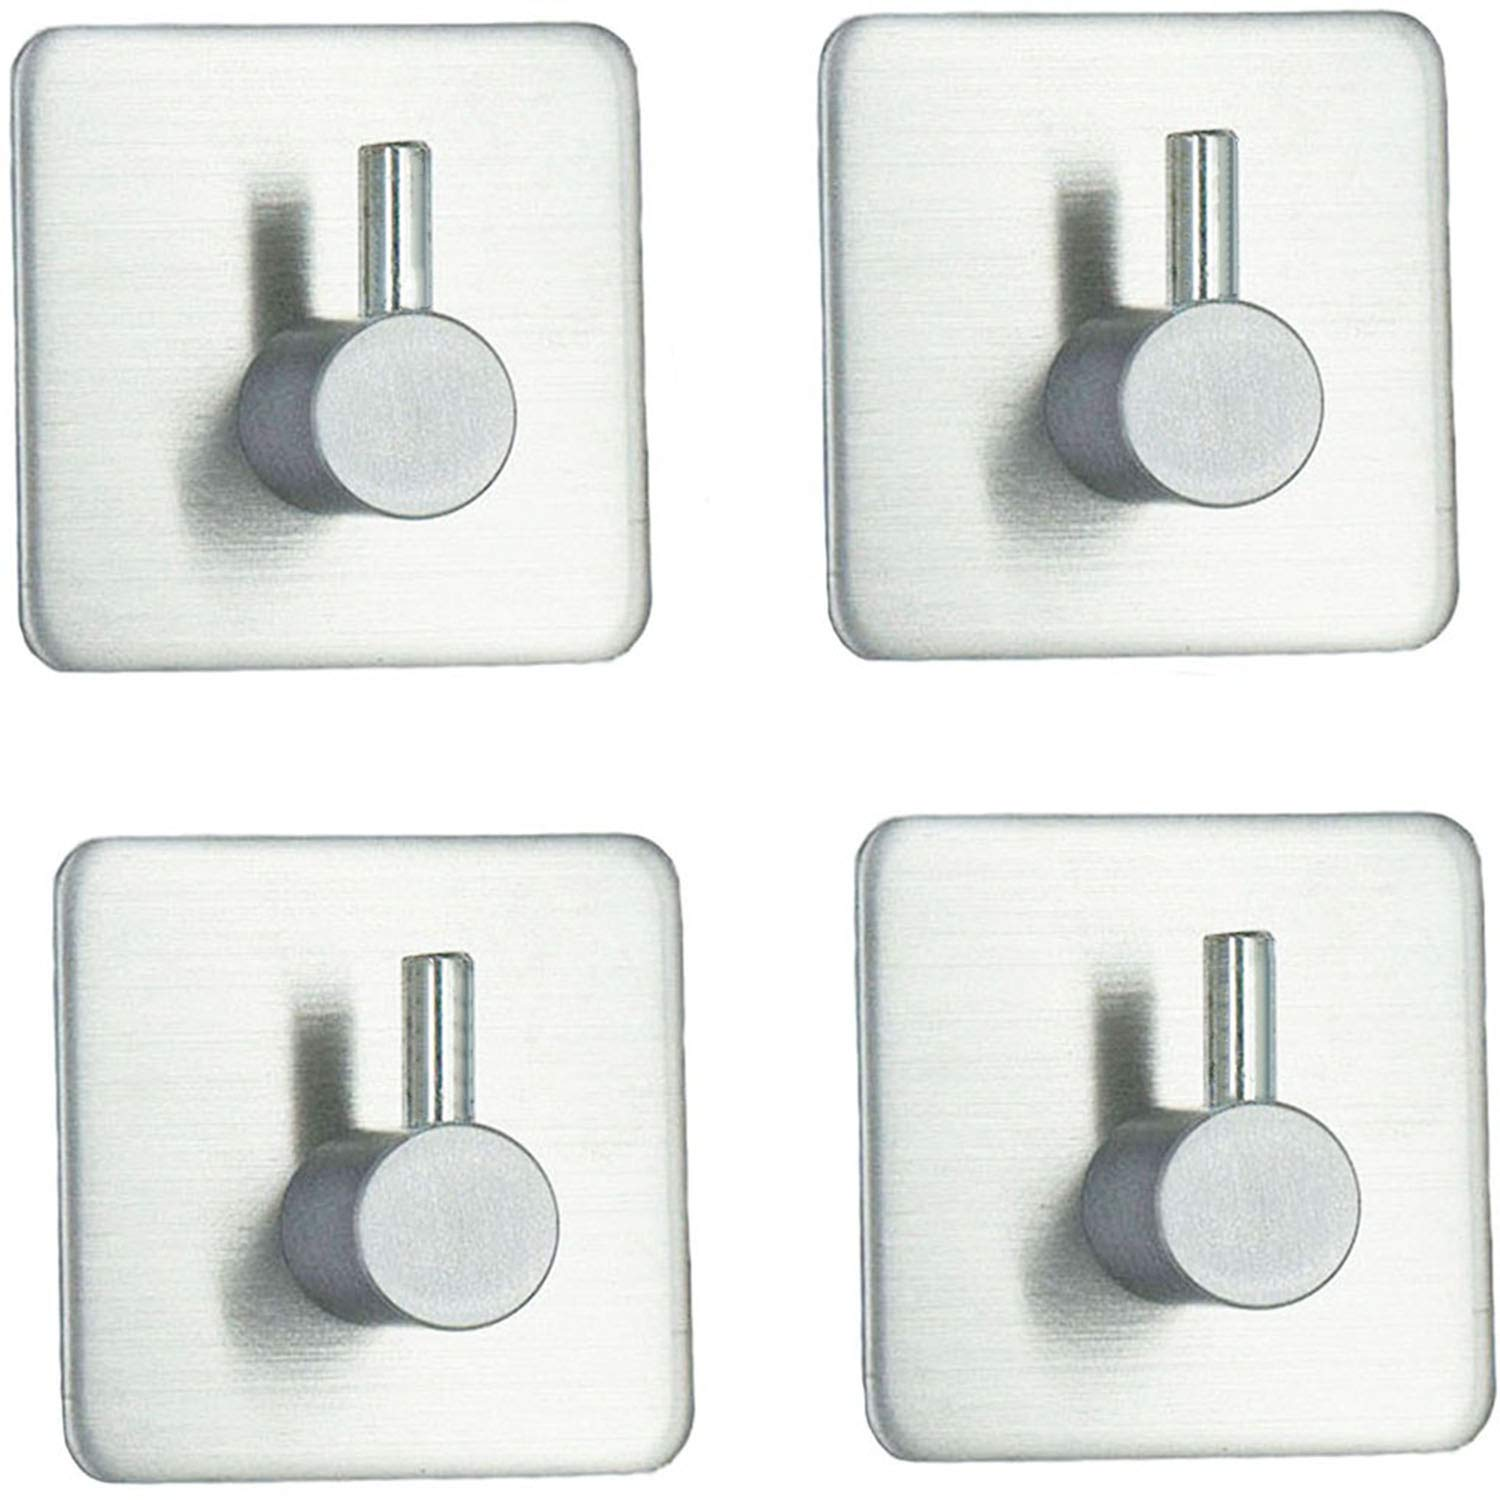 Self Adhesive Hooks, Towel Hook Wall Mounted Heavy Duty for Kitchen,Bathroom Robe Hook, Lavatory Closets (8 Pack) GANUZUO